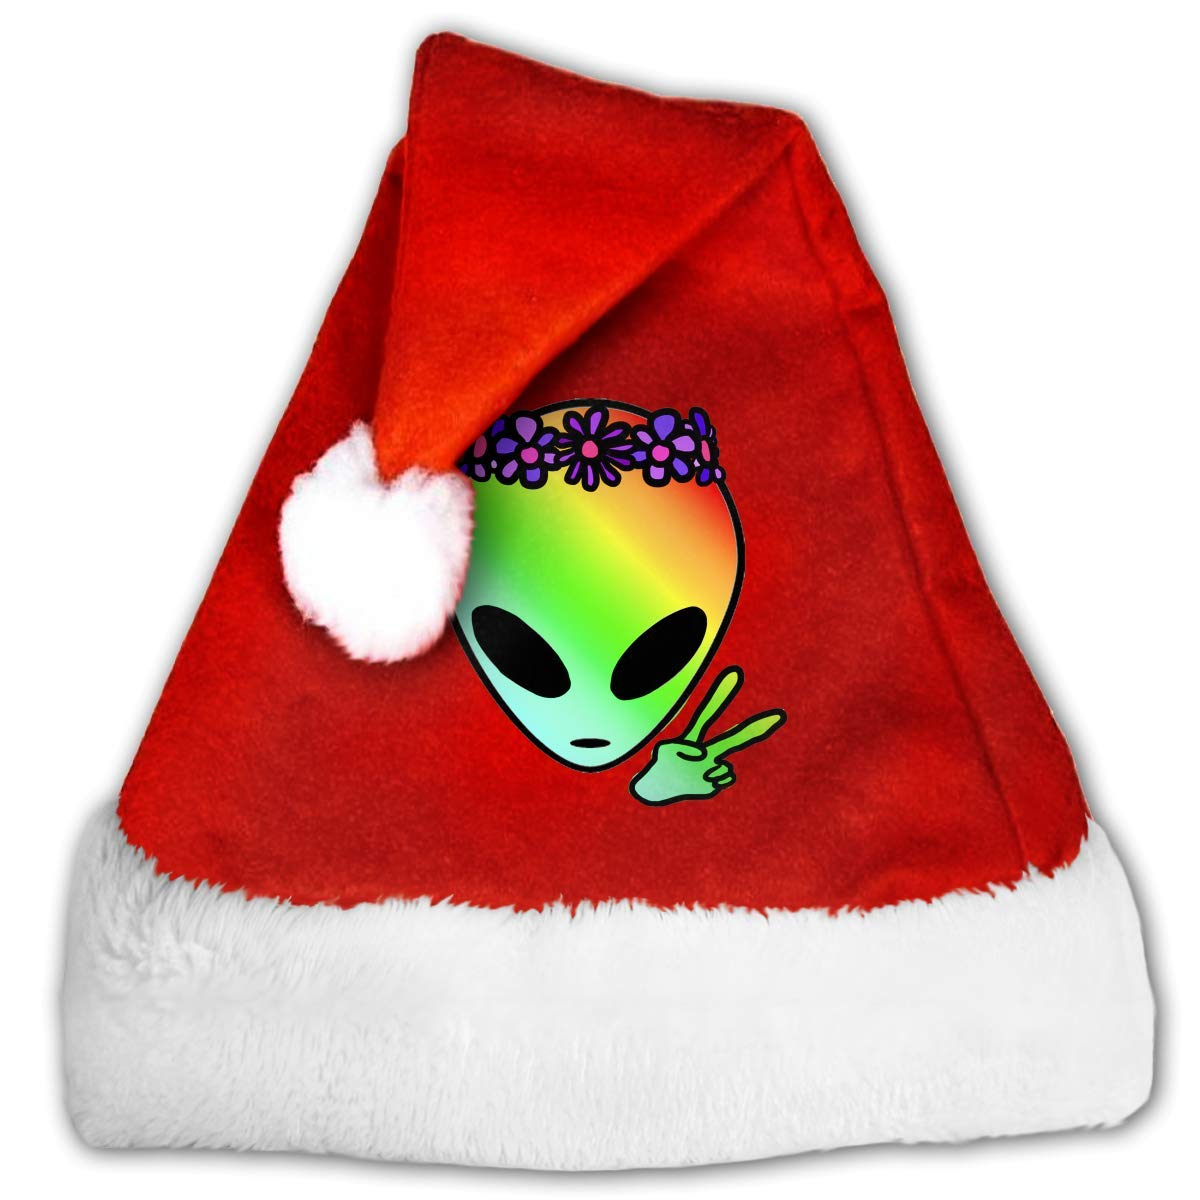 1461ffbcc6cba Amazon.com  cnaegaa Cool Alien Christmas Hat Or Nice Festive Holiday Hat  for Childrens and Adults Pleuche Santa Hat Red  Clothing